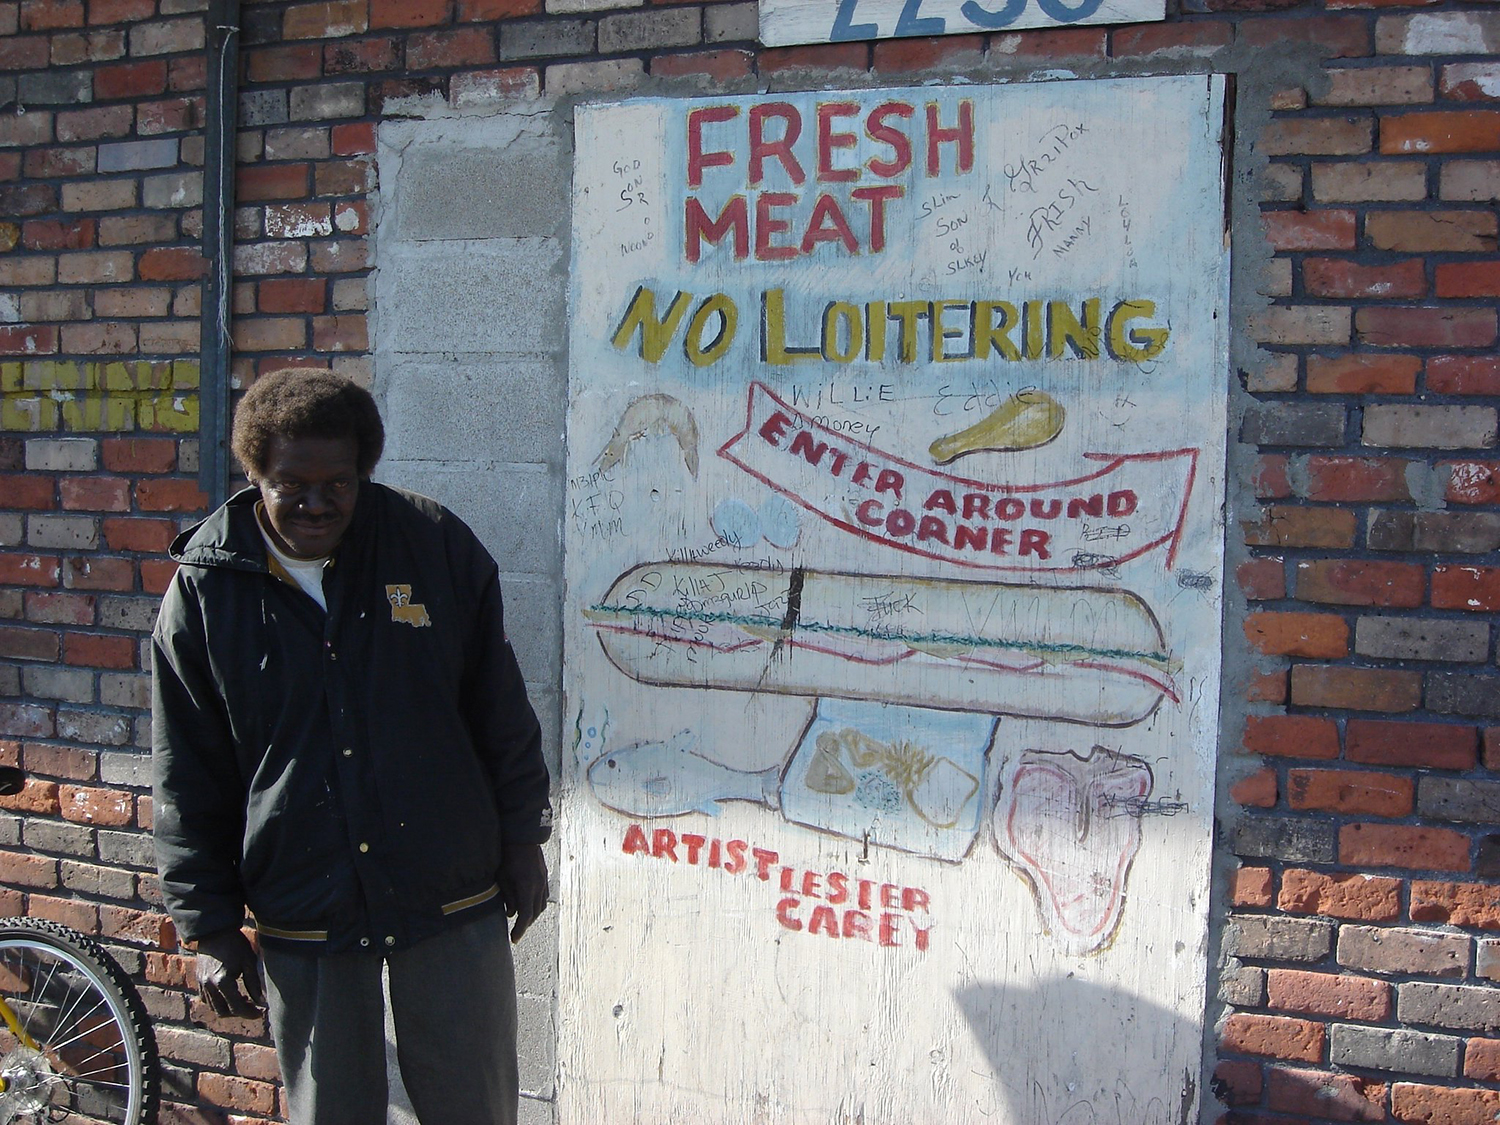 Lester Carey next to a hand-painted sign